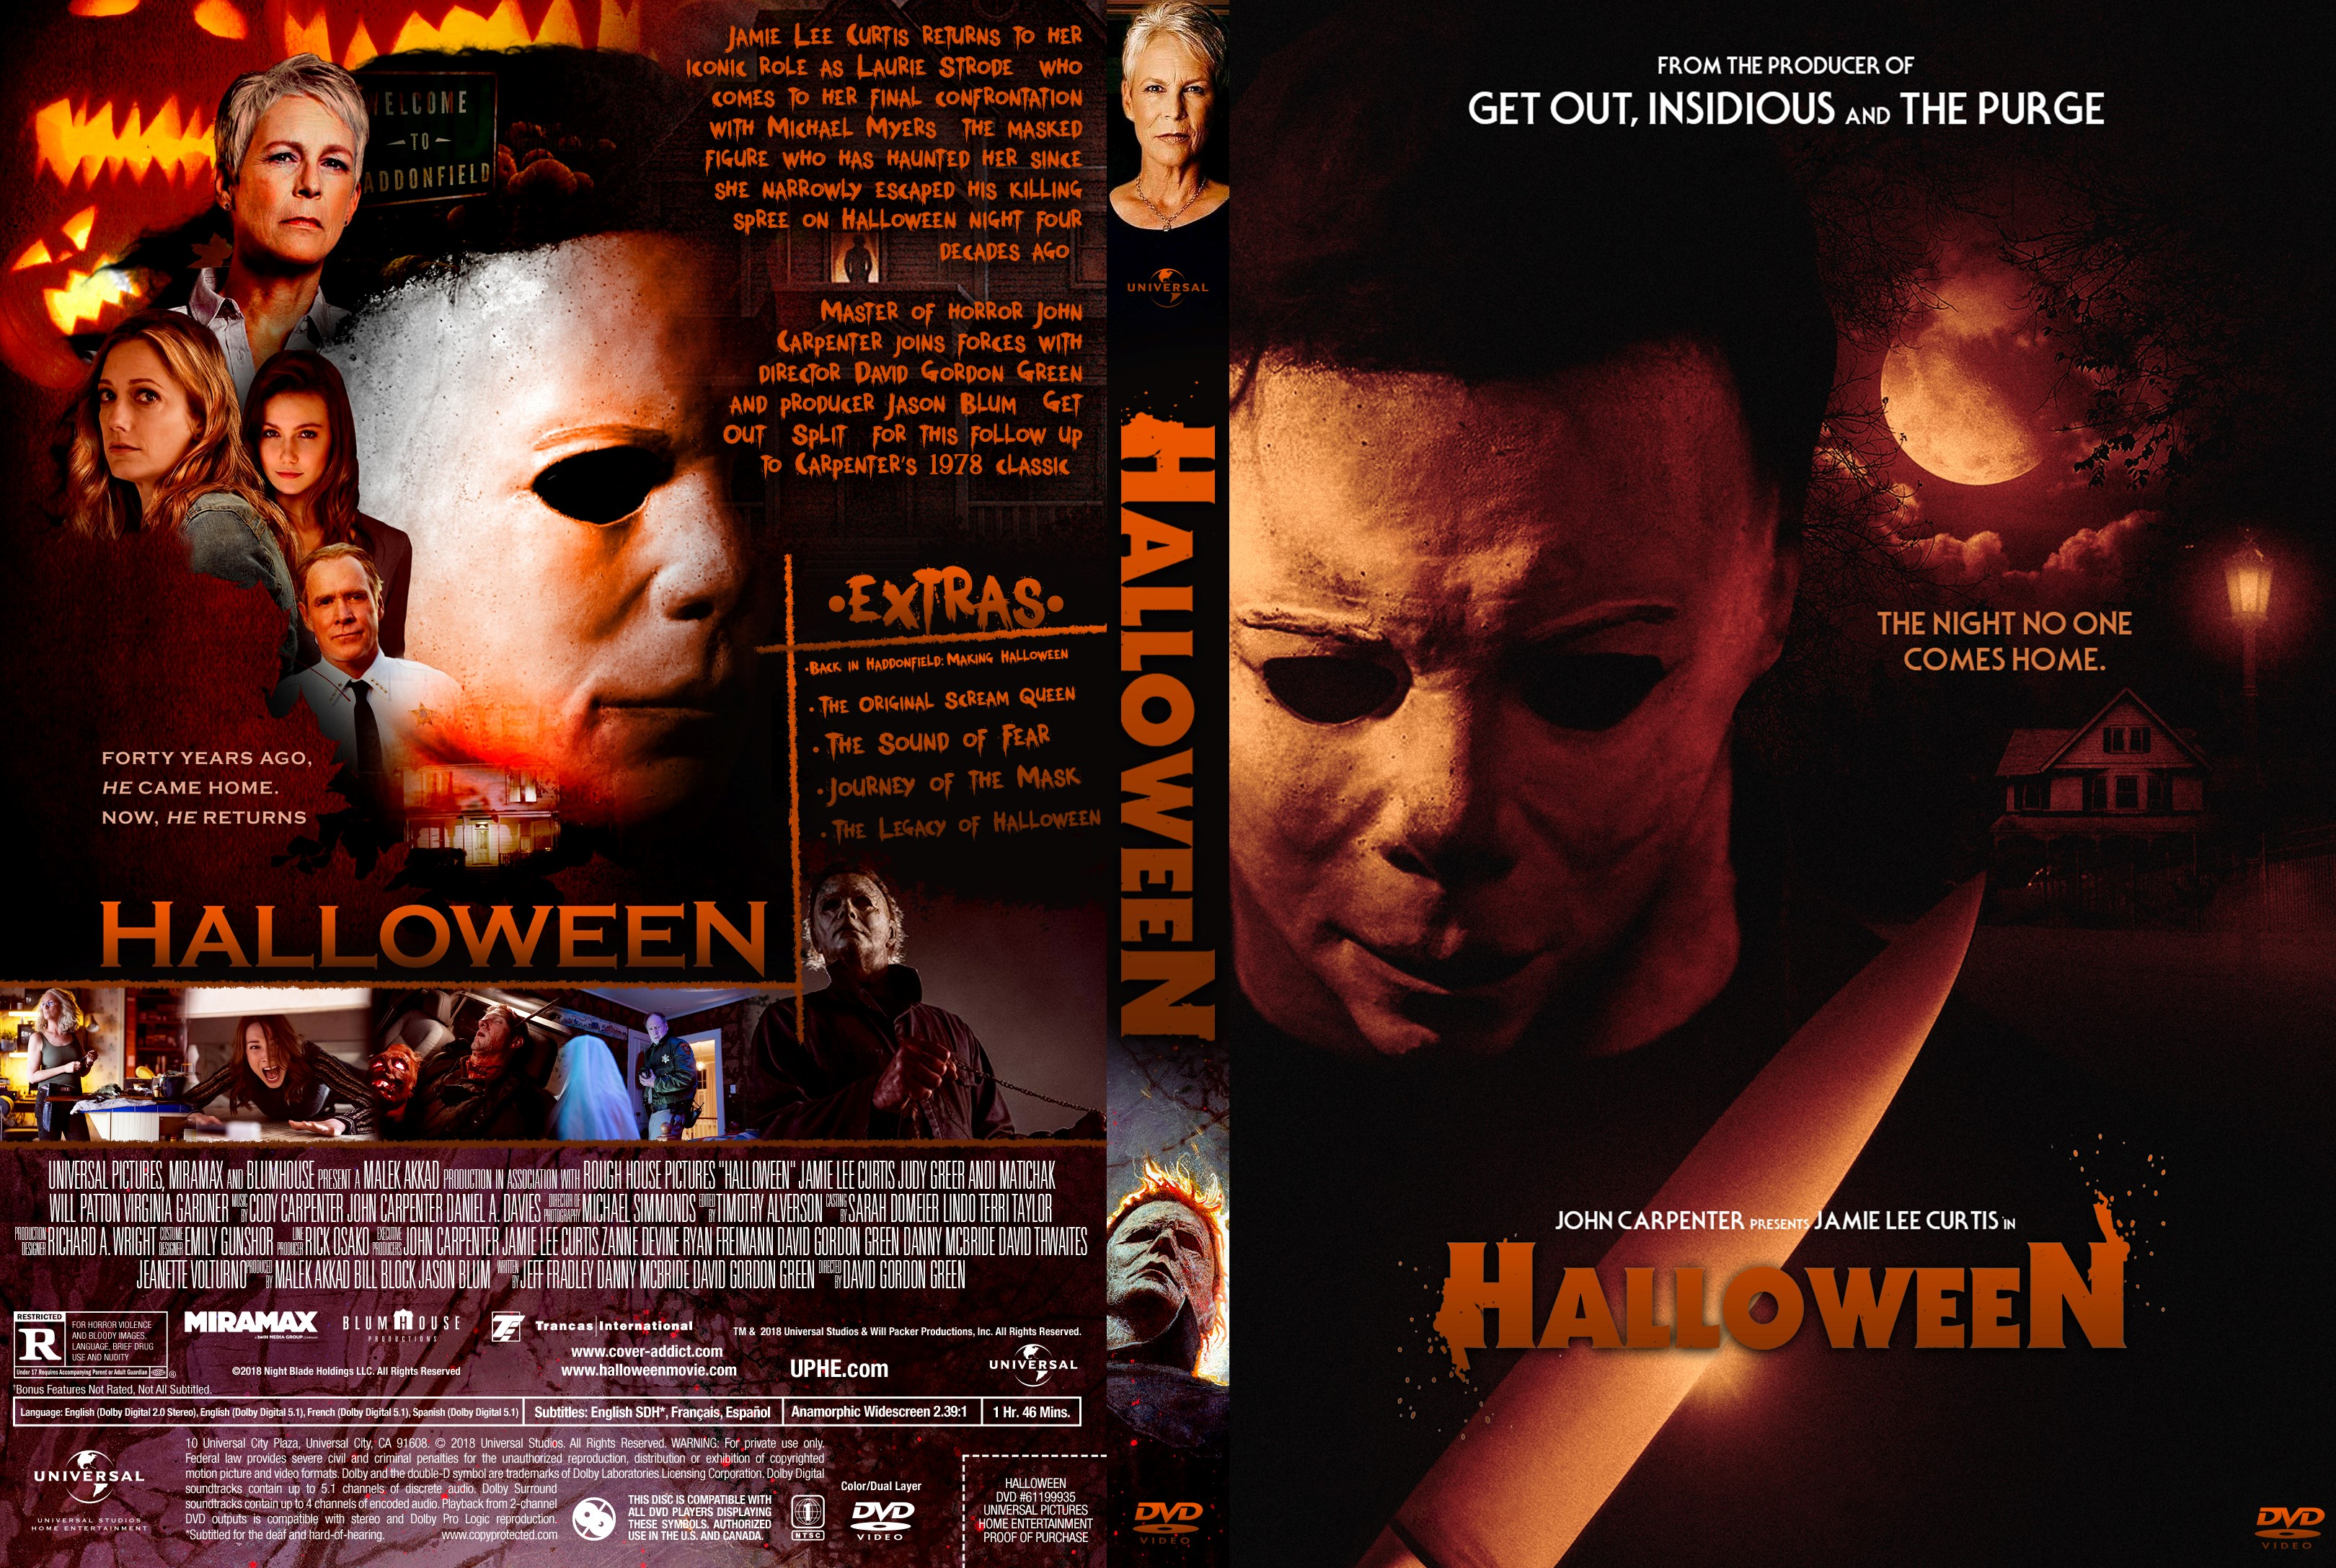 Halloween 2018 V2 Front Dvd Covers Cover Century Over 500 000 Album Art Covers For Free